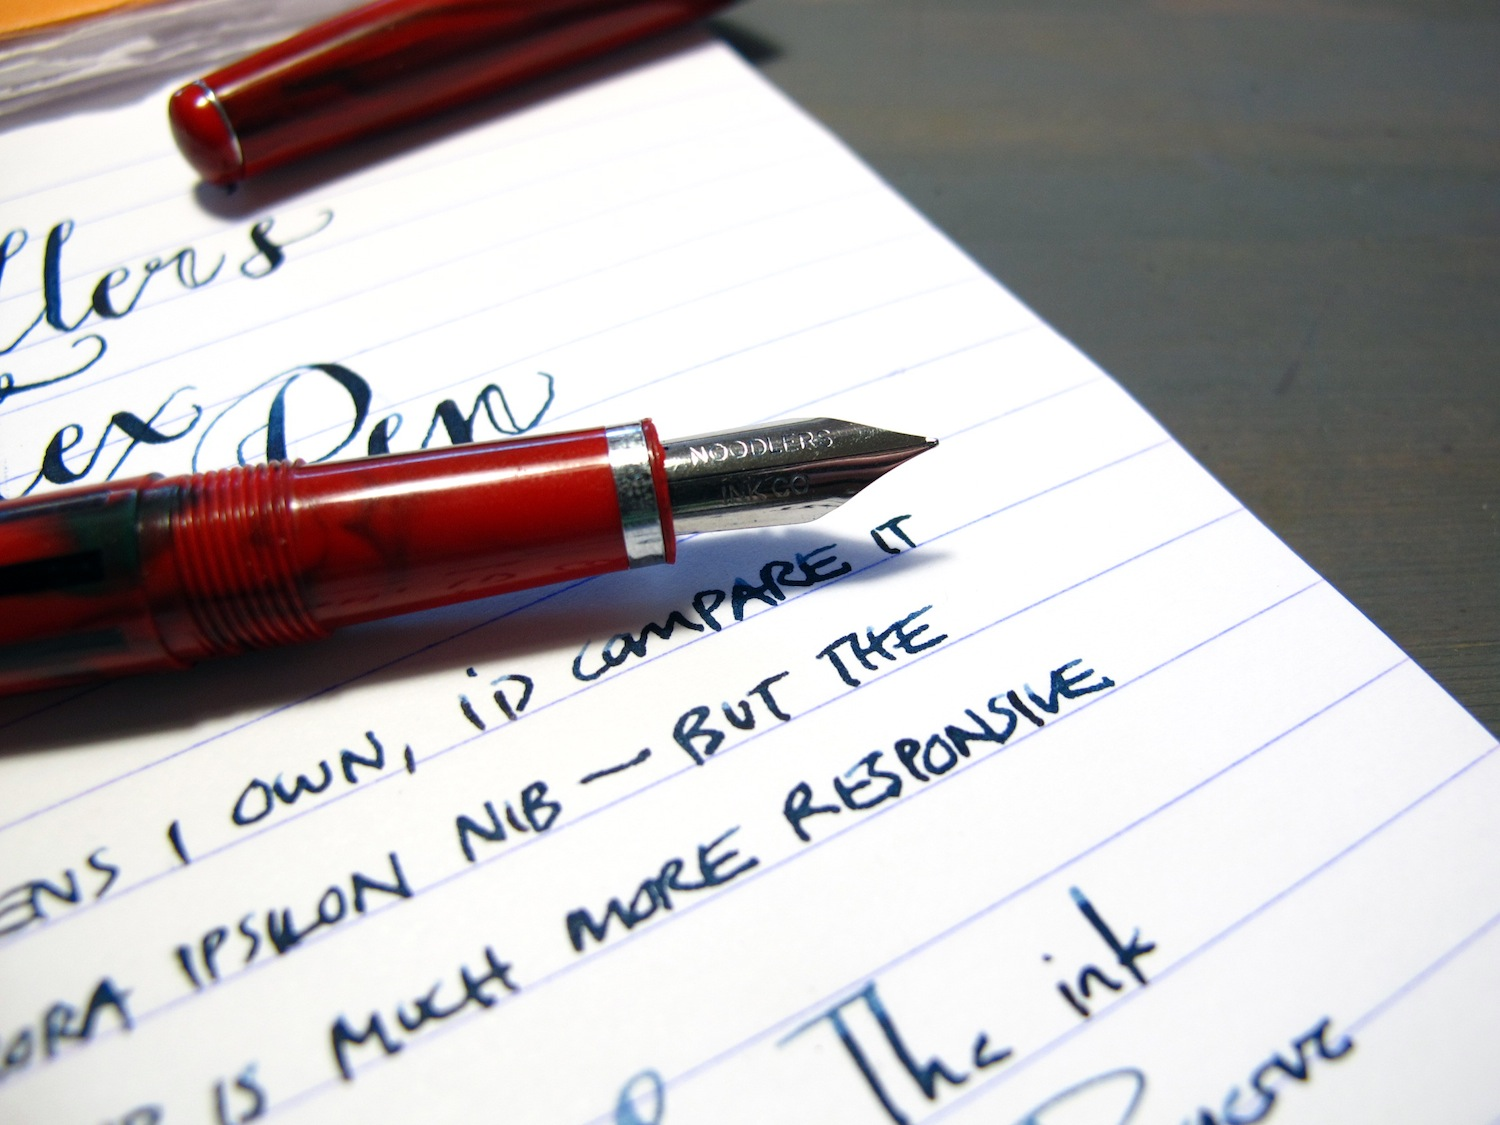 fountain pen the orchard